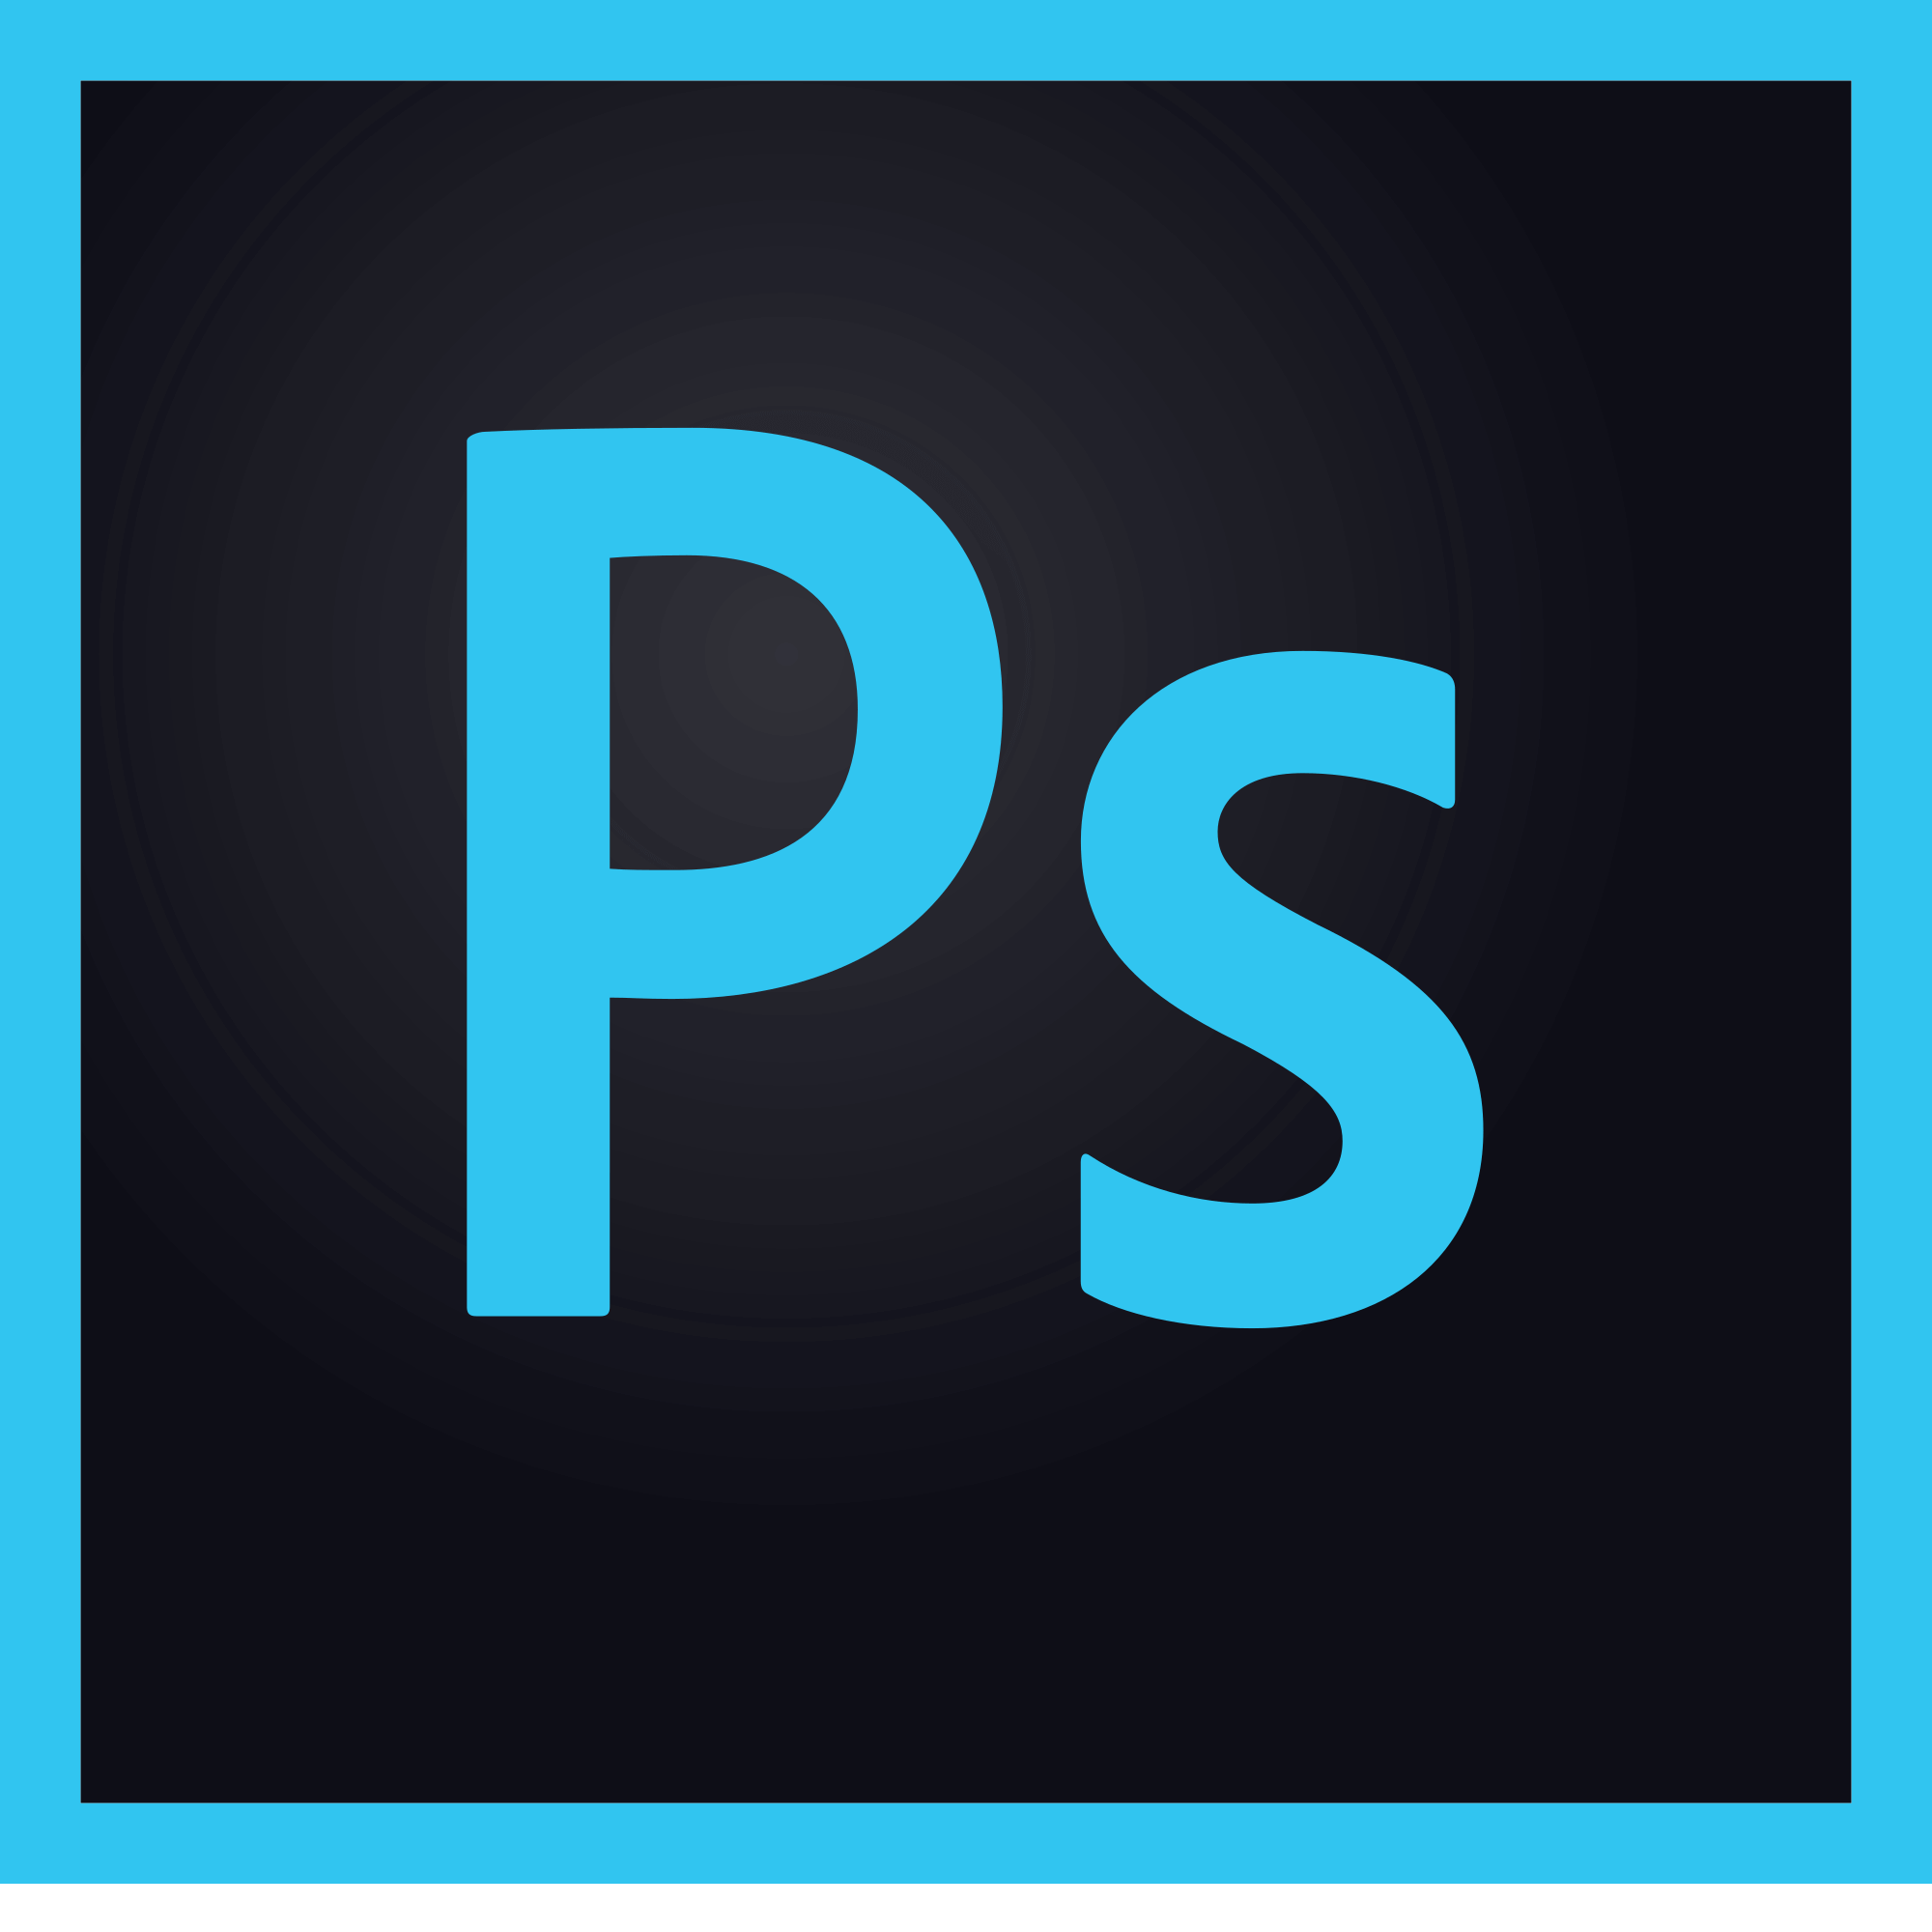 Adobe_Photoshop_CC_icon